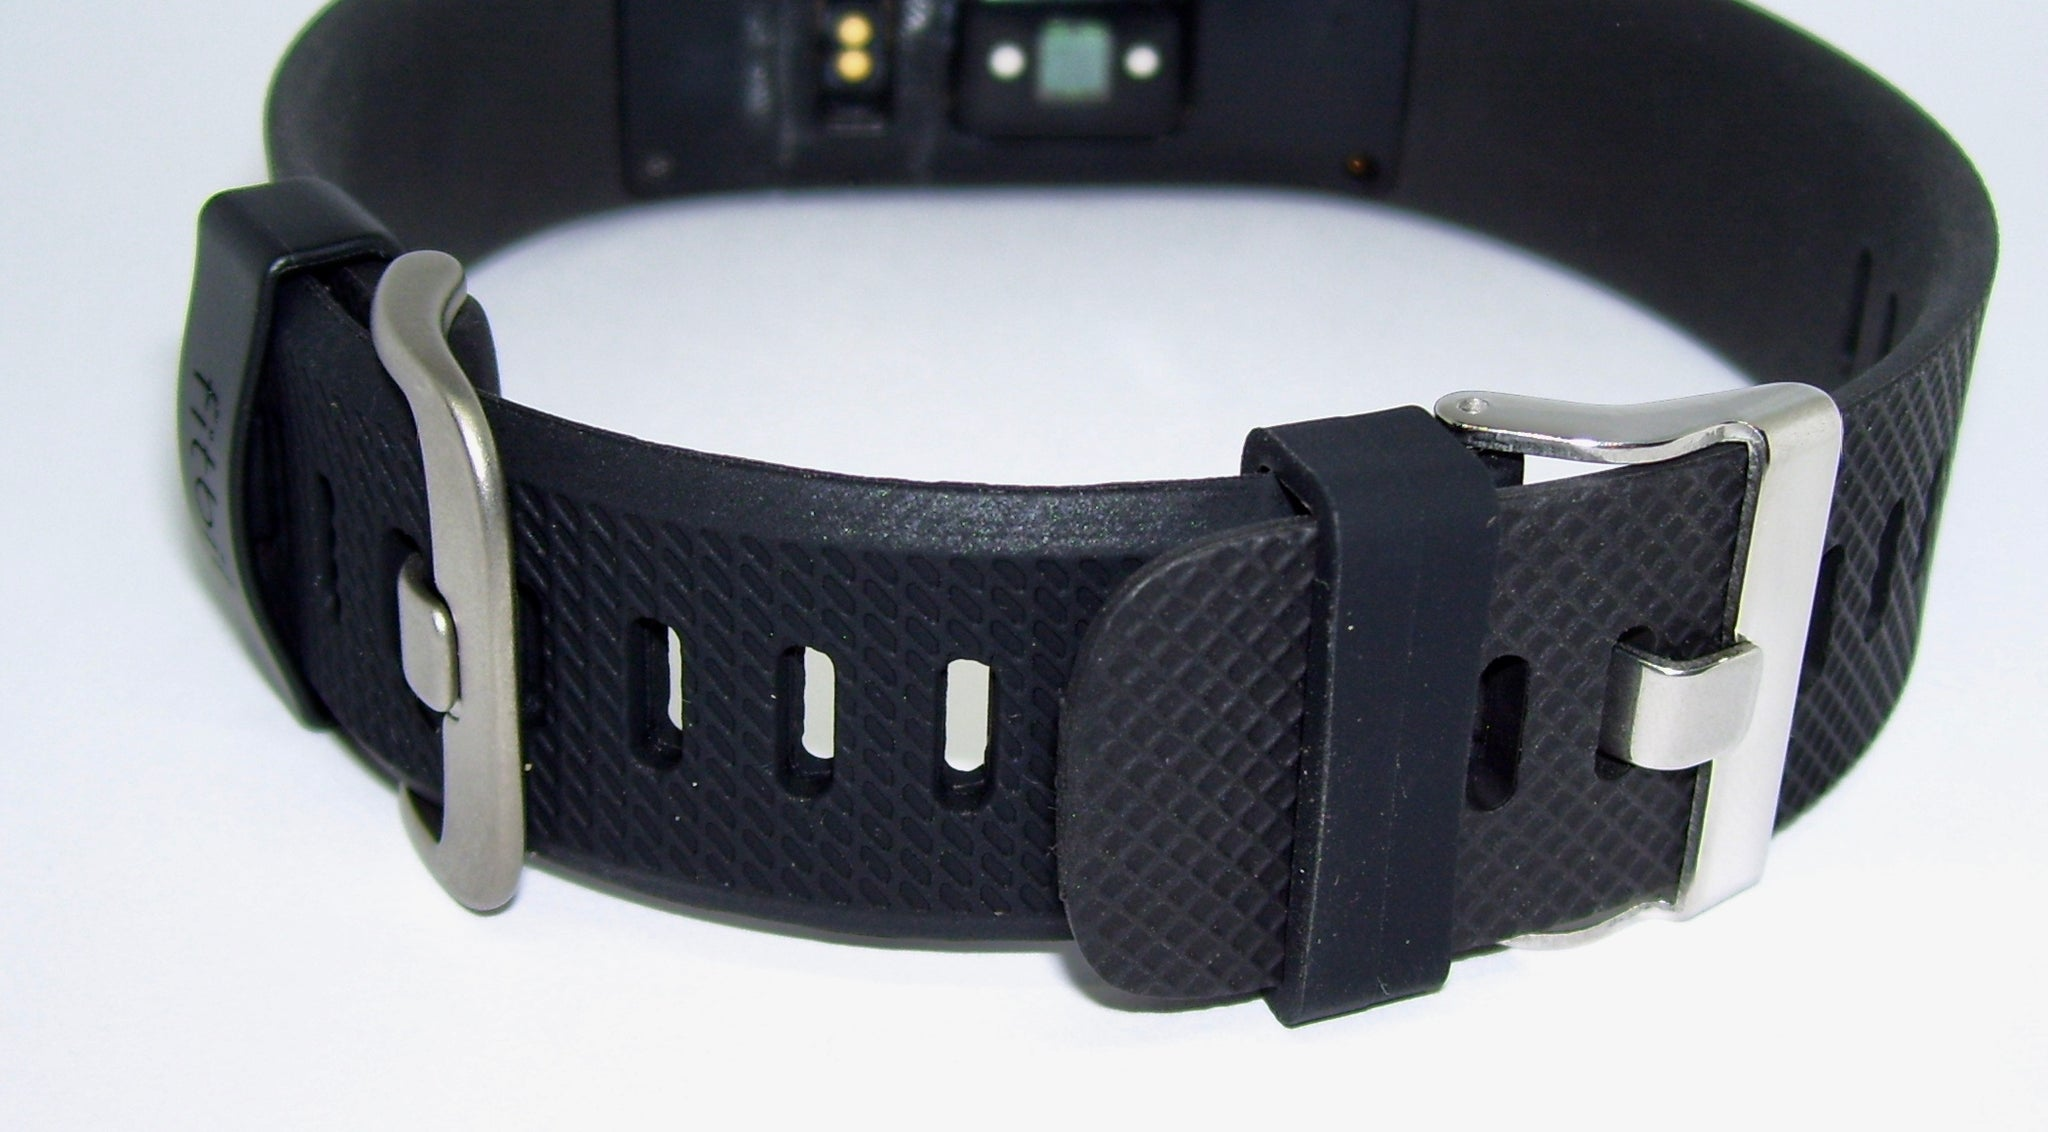 Purple Band Extender Fits Fitbit CHARGE HR//2/& 3 Bands for Larger Sized Wrist